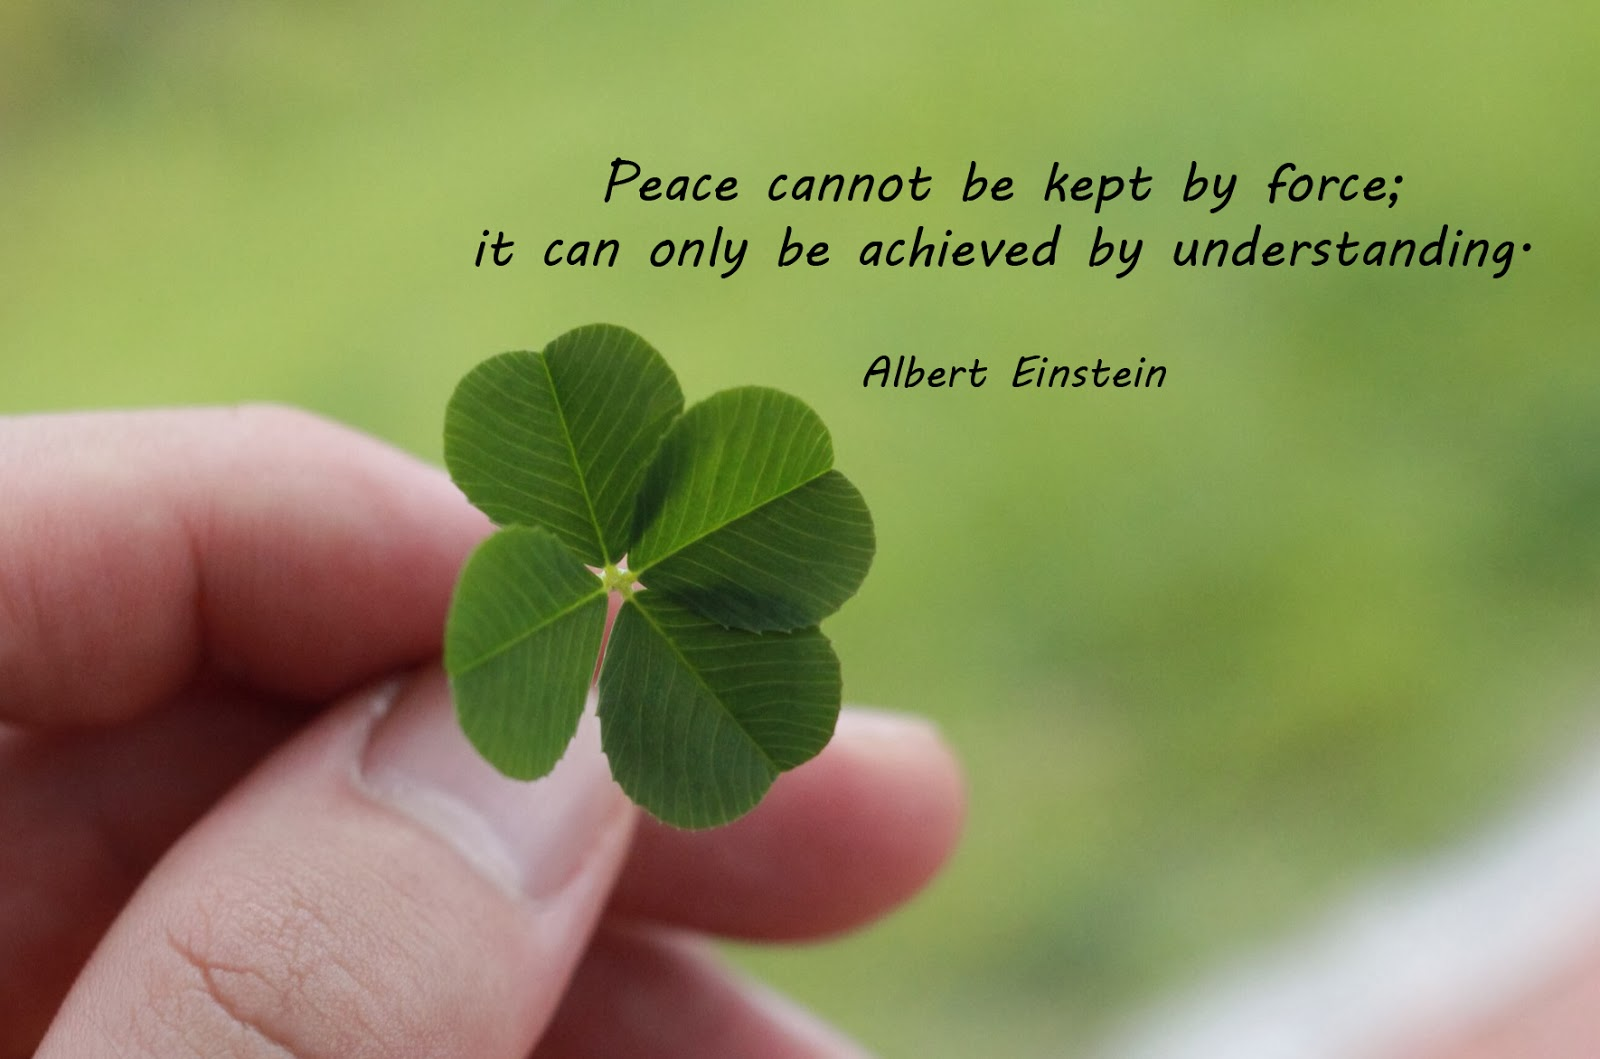 World Peace Quotes And Sayings Quotesgram